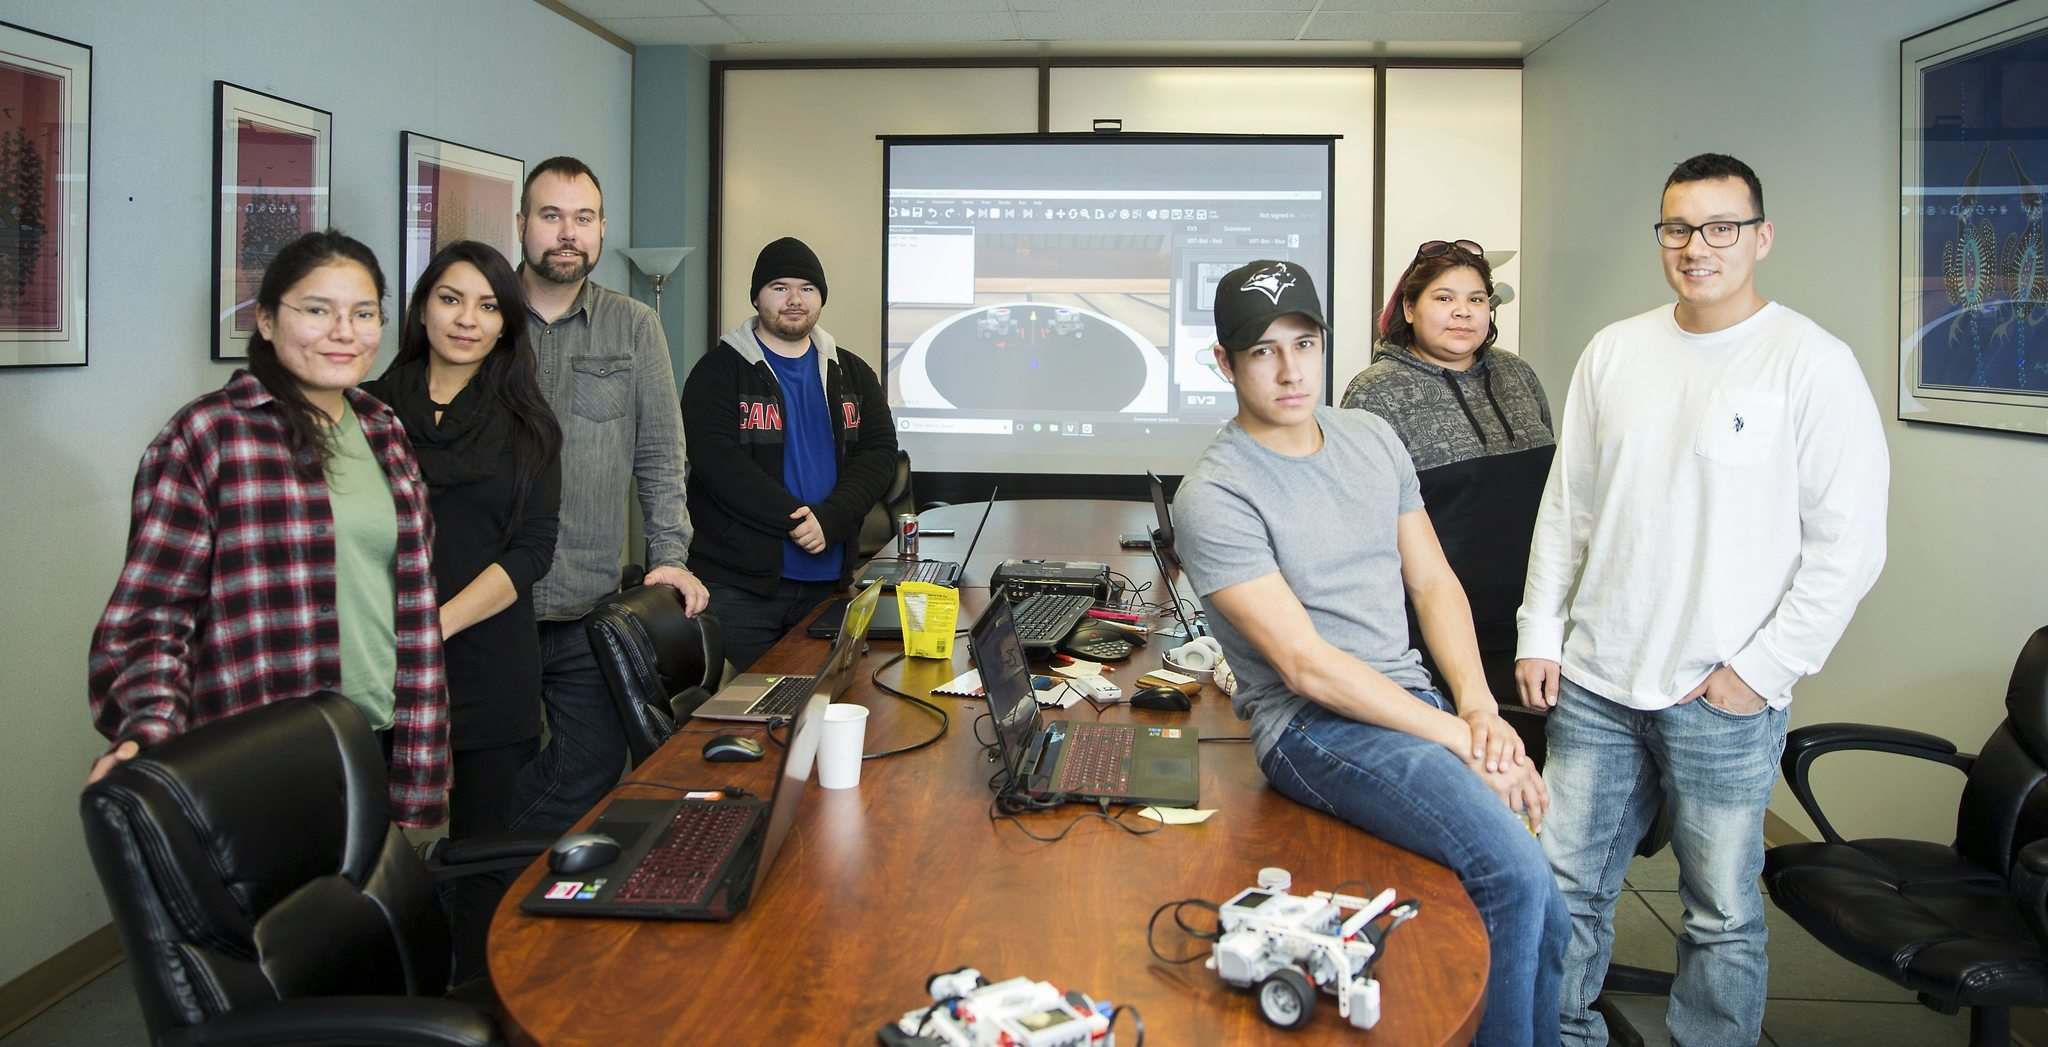 MIKAELA MACKENZIE / WINNIPEG FREE PRESS</p><p>Robotics instructors Lisa Harper (left), Alexis Nelson, Chris Schulz, Kane Slavuta, Shini Barratt, Tia Dumas, and Jared Bone at the First Peoples Development Inc. offices in Winnipeg on Thursday, March 15, 2018. First Peoples Development Inc. has teamed up with a Winnipeg robotics company called Cogmation to deliver two-week long robotics coding workshops in First Nations in Manitoba that culminate in a Lego robot Sumo wrestling competition.</p>